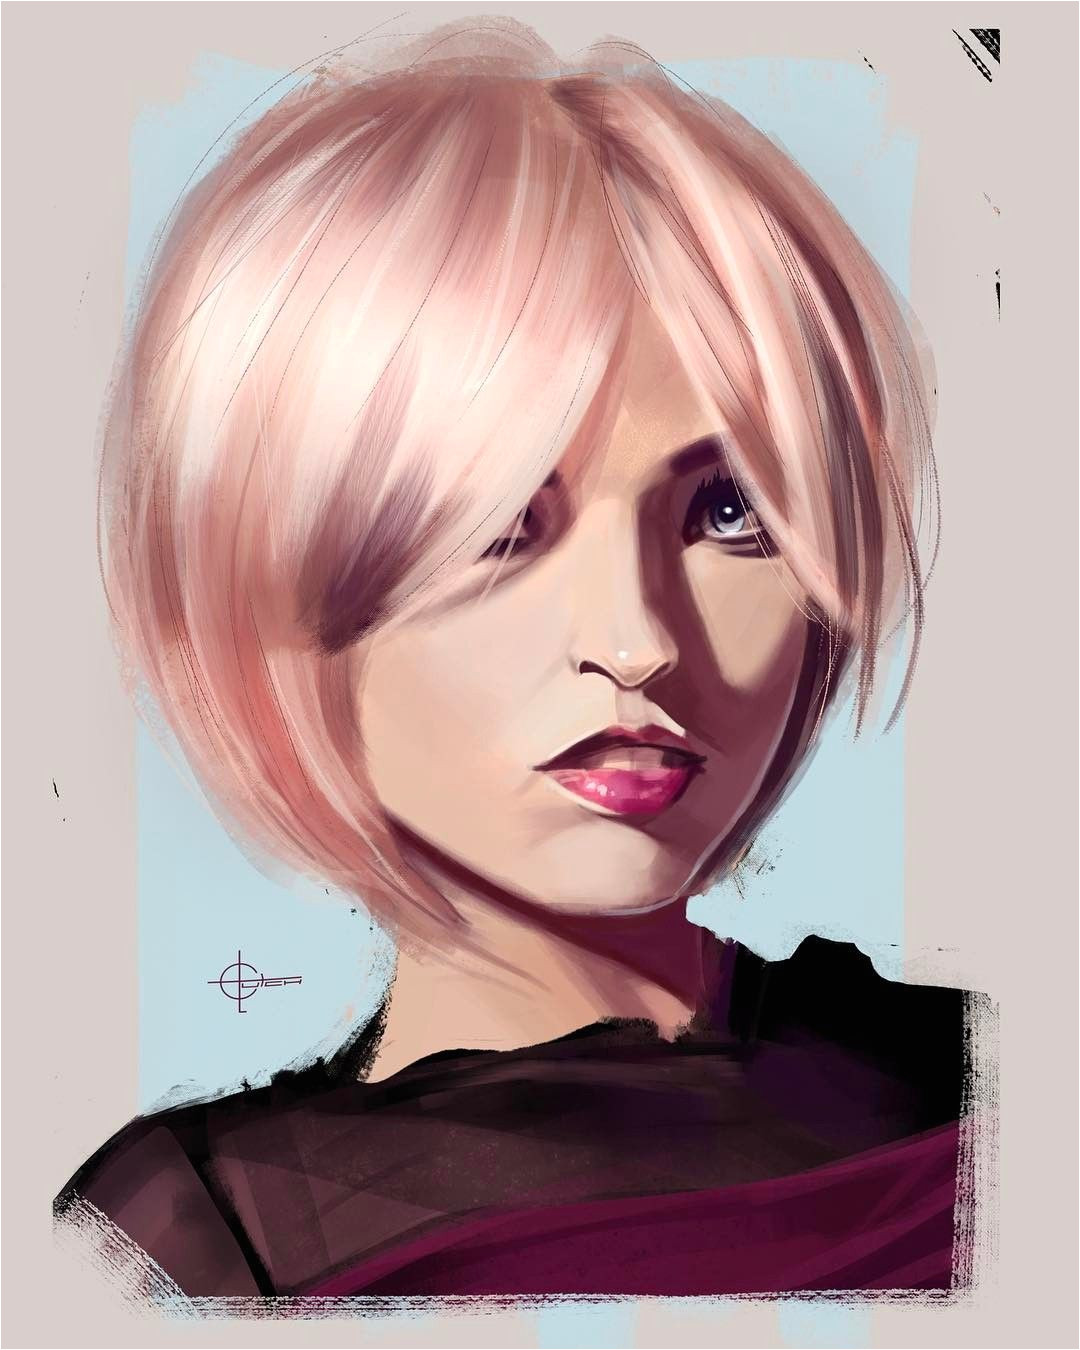 Portrait sketch done for the Daily Drawing Challenge art